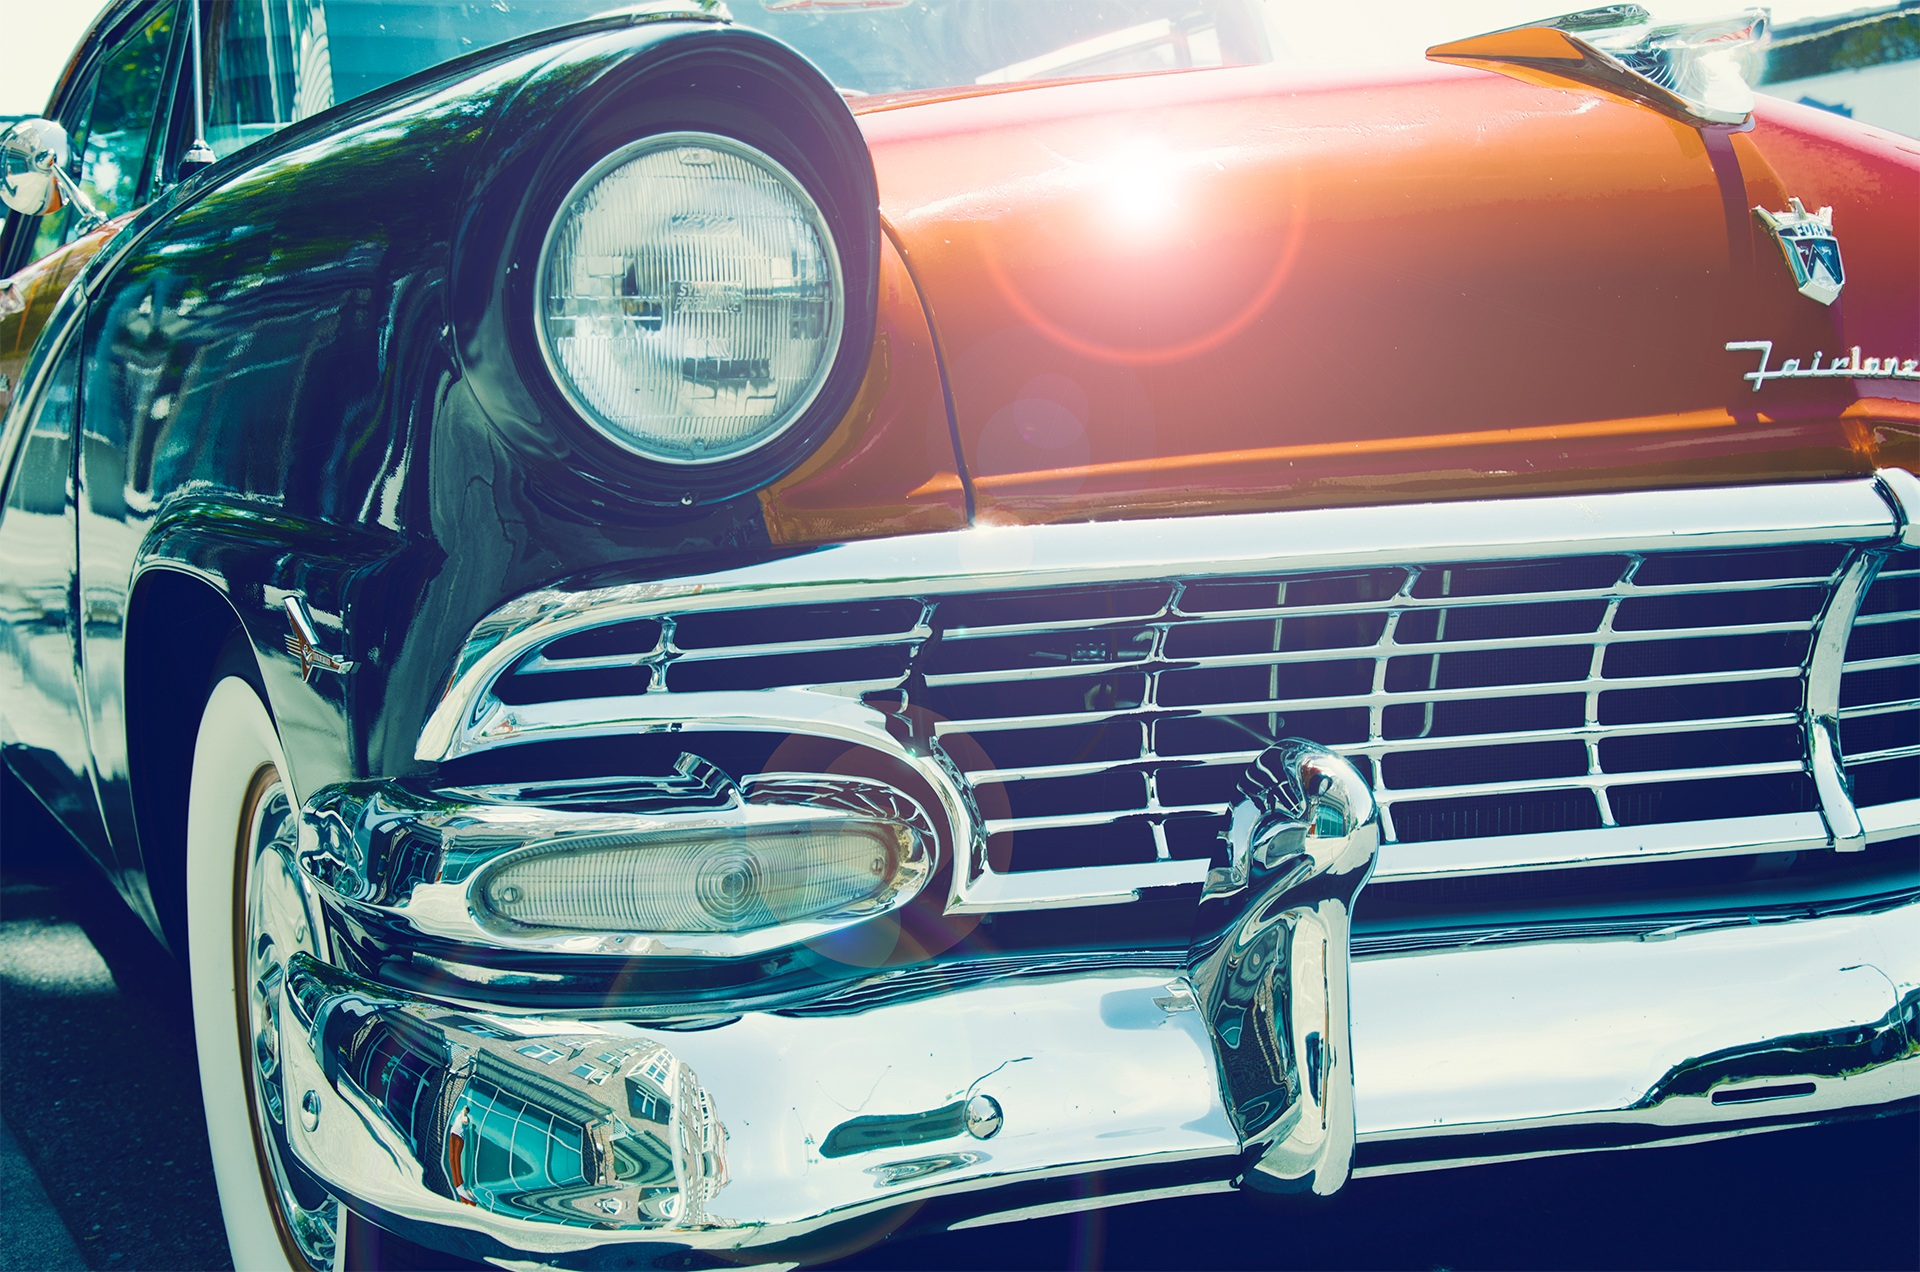 128252 download wallpaper Cars, Auto, Vintage, Before, Headlight screensavers and pictures for free